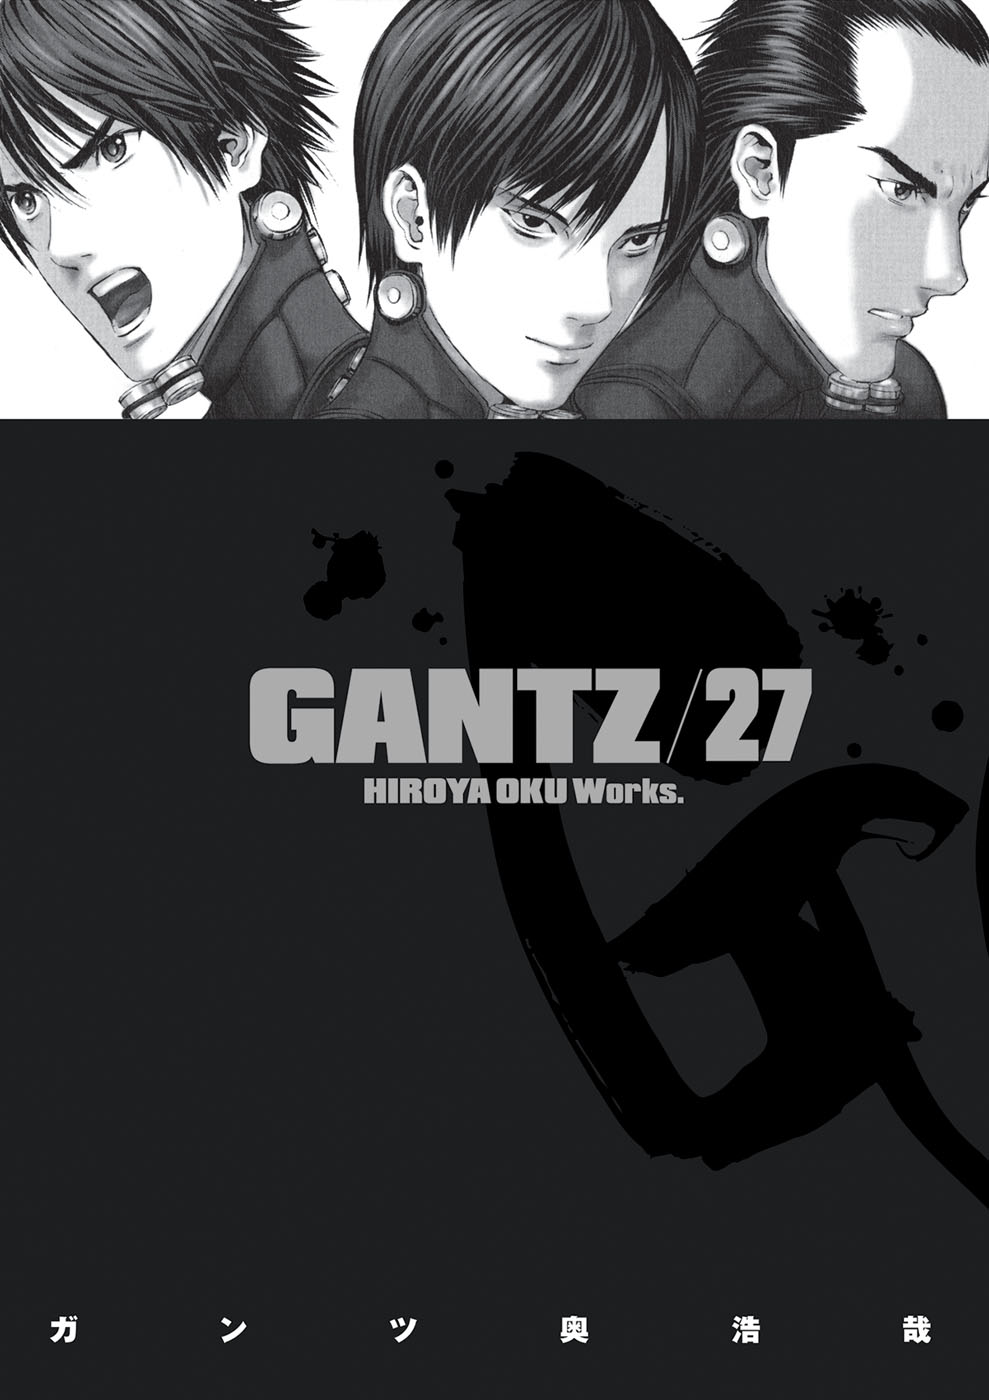 gantz27 DARK HORSE COMICS Solicitations for FEBRUARY 2013